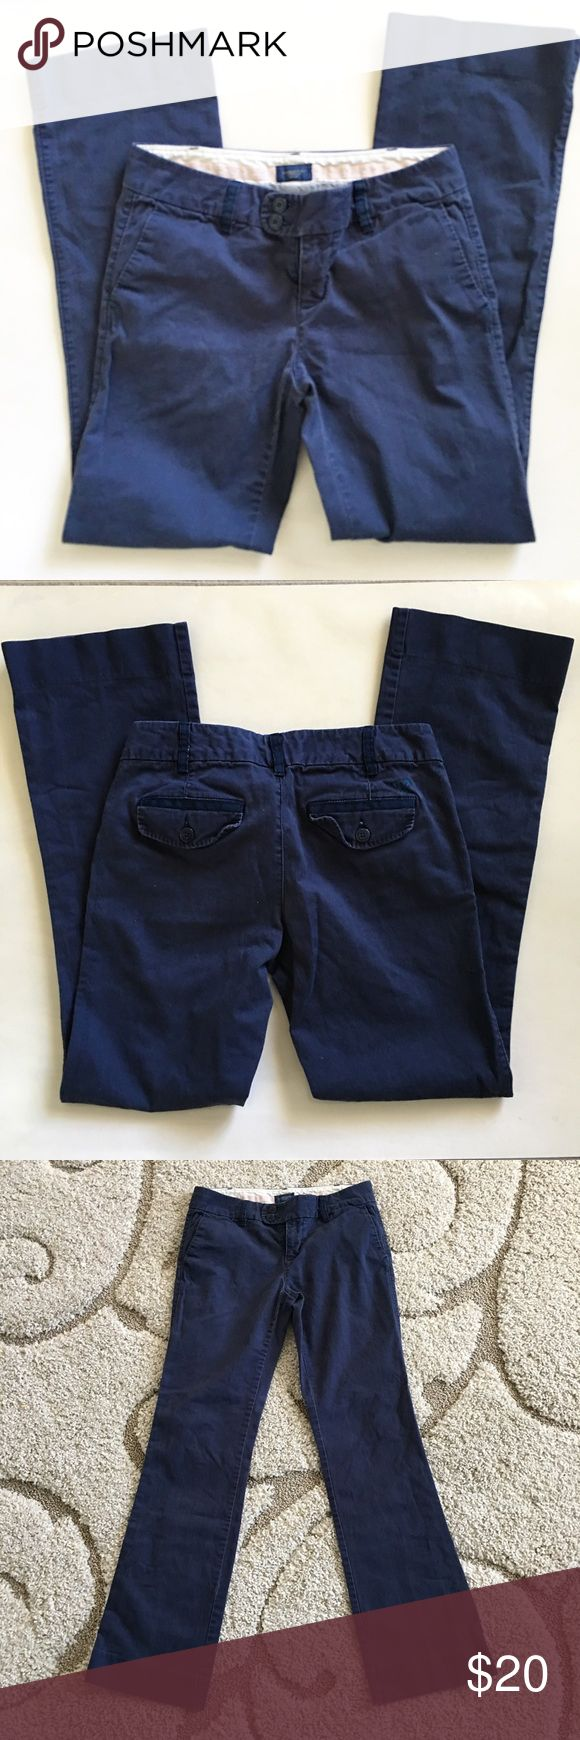 Navy Blue American Eagle Trousers Navy Blue American Eagle pants. Size 4 American Eagle Outfitters Pants Trousers